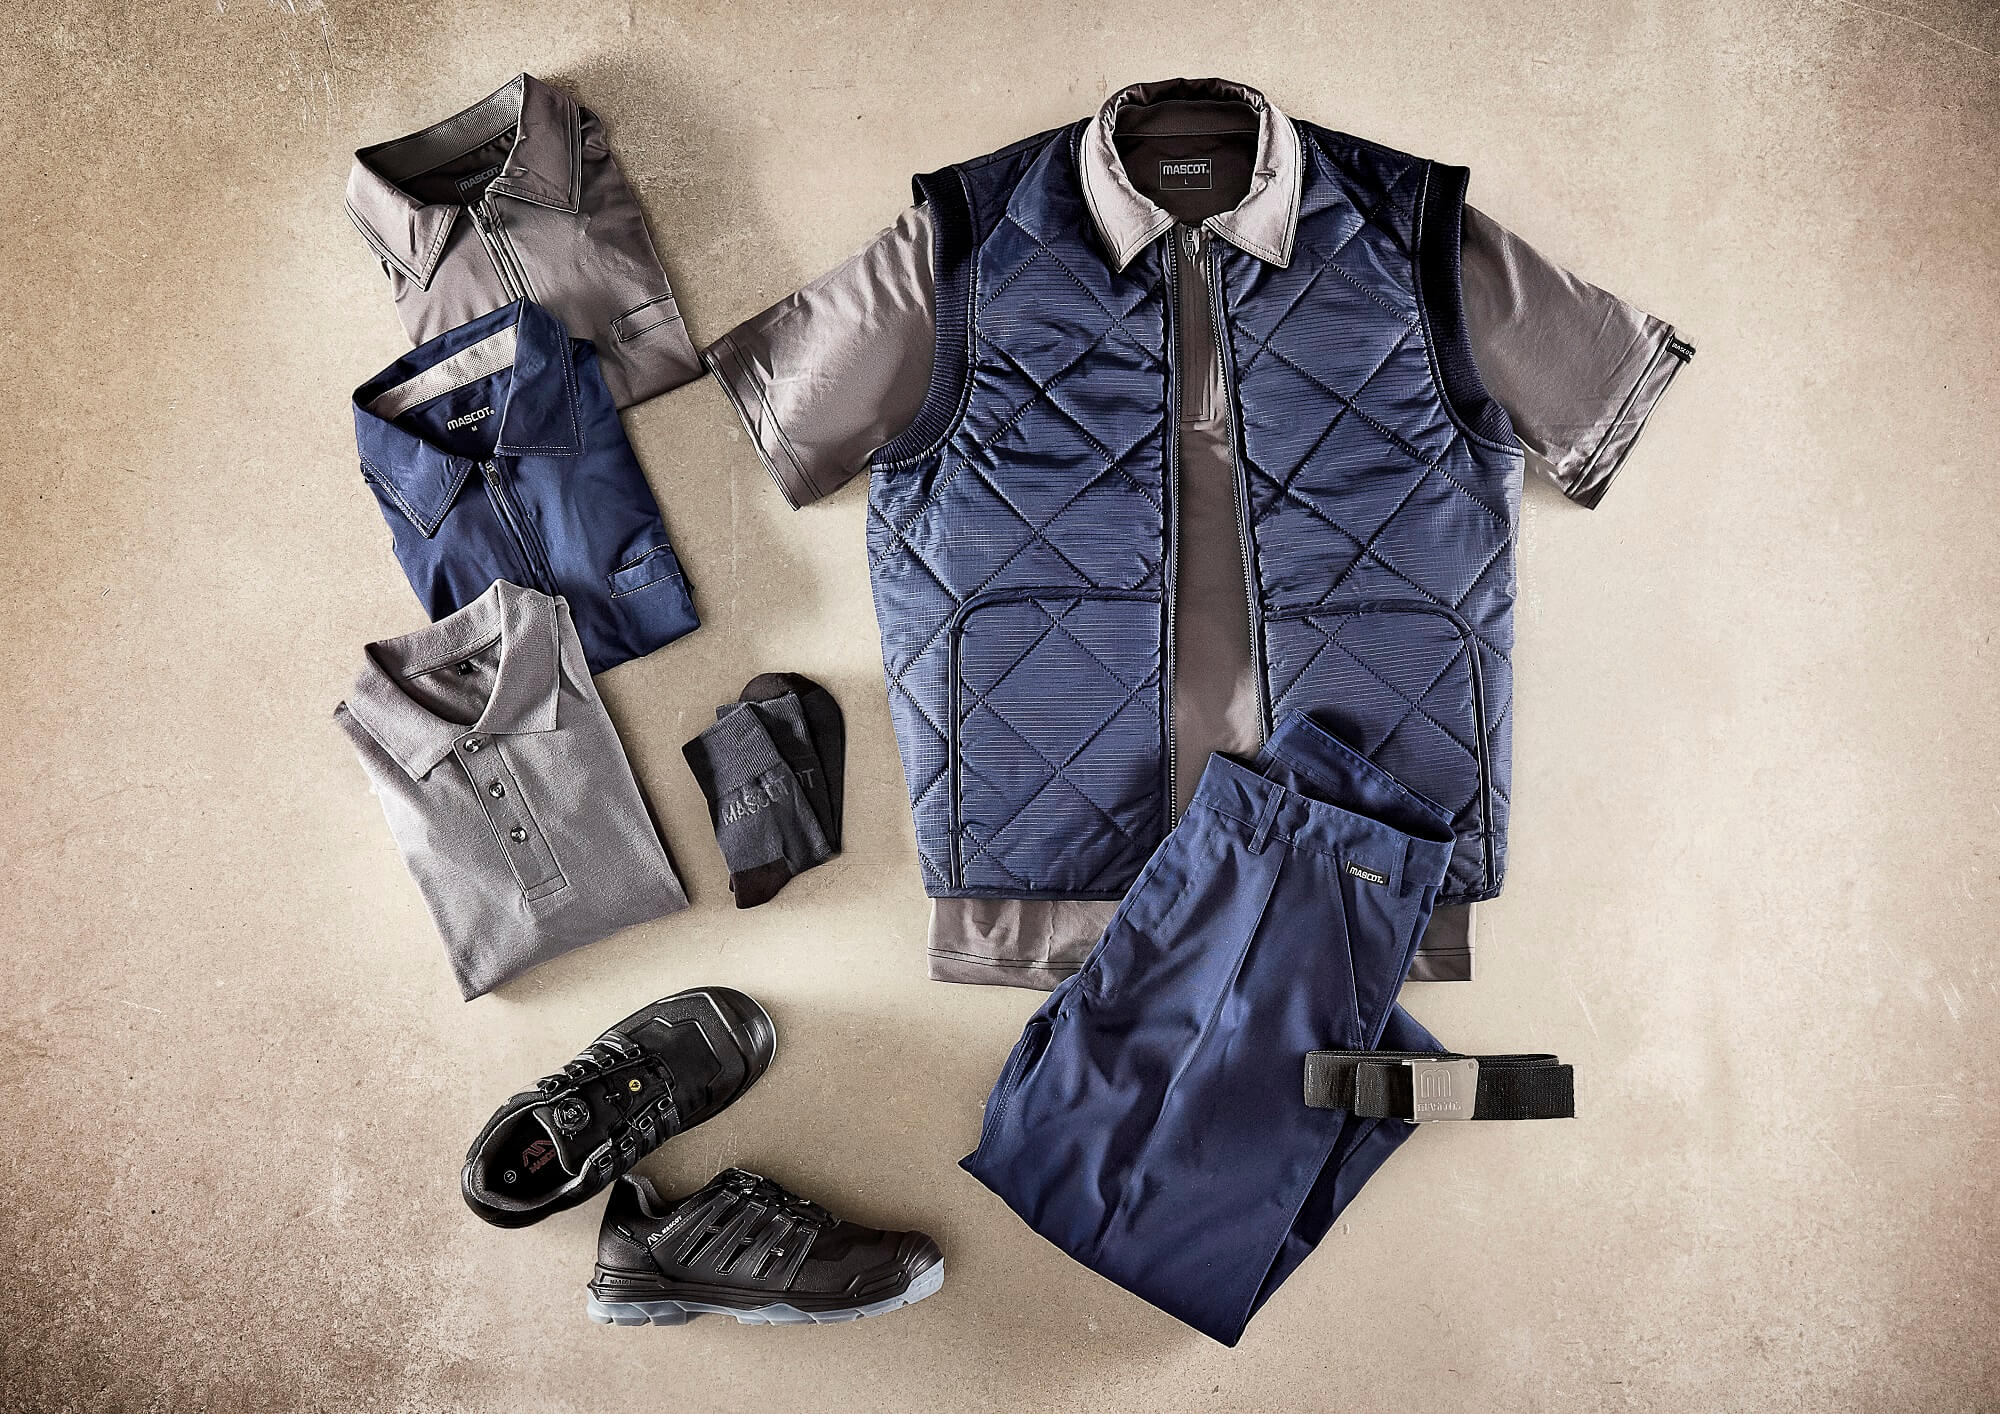 Navy - Thermal Gilet, Polo shirts & Trousers with thigh pockets - Collage